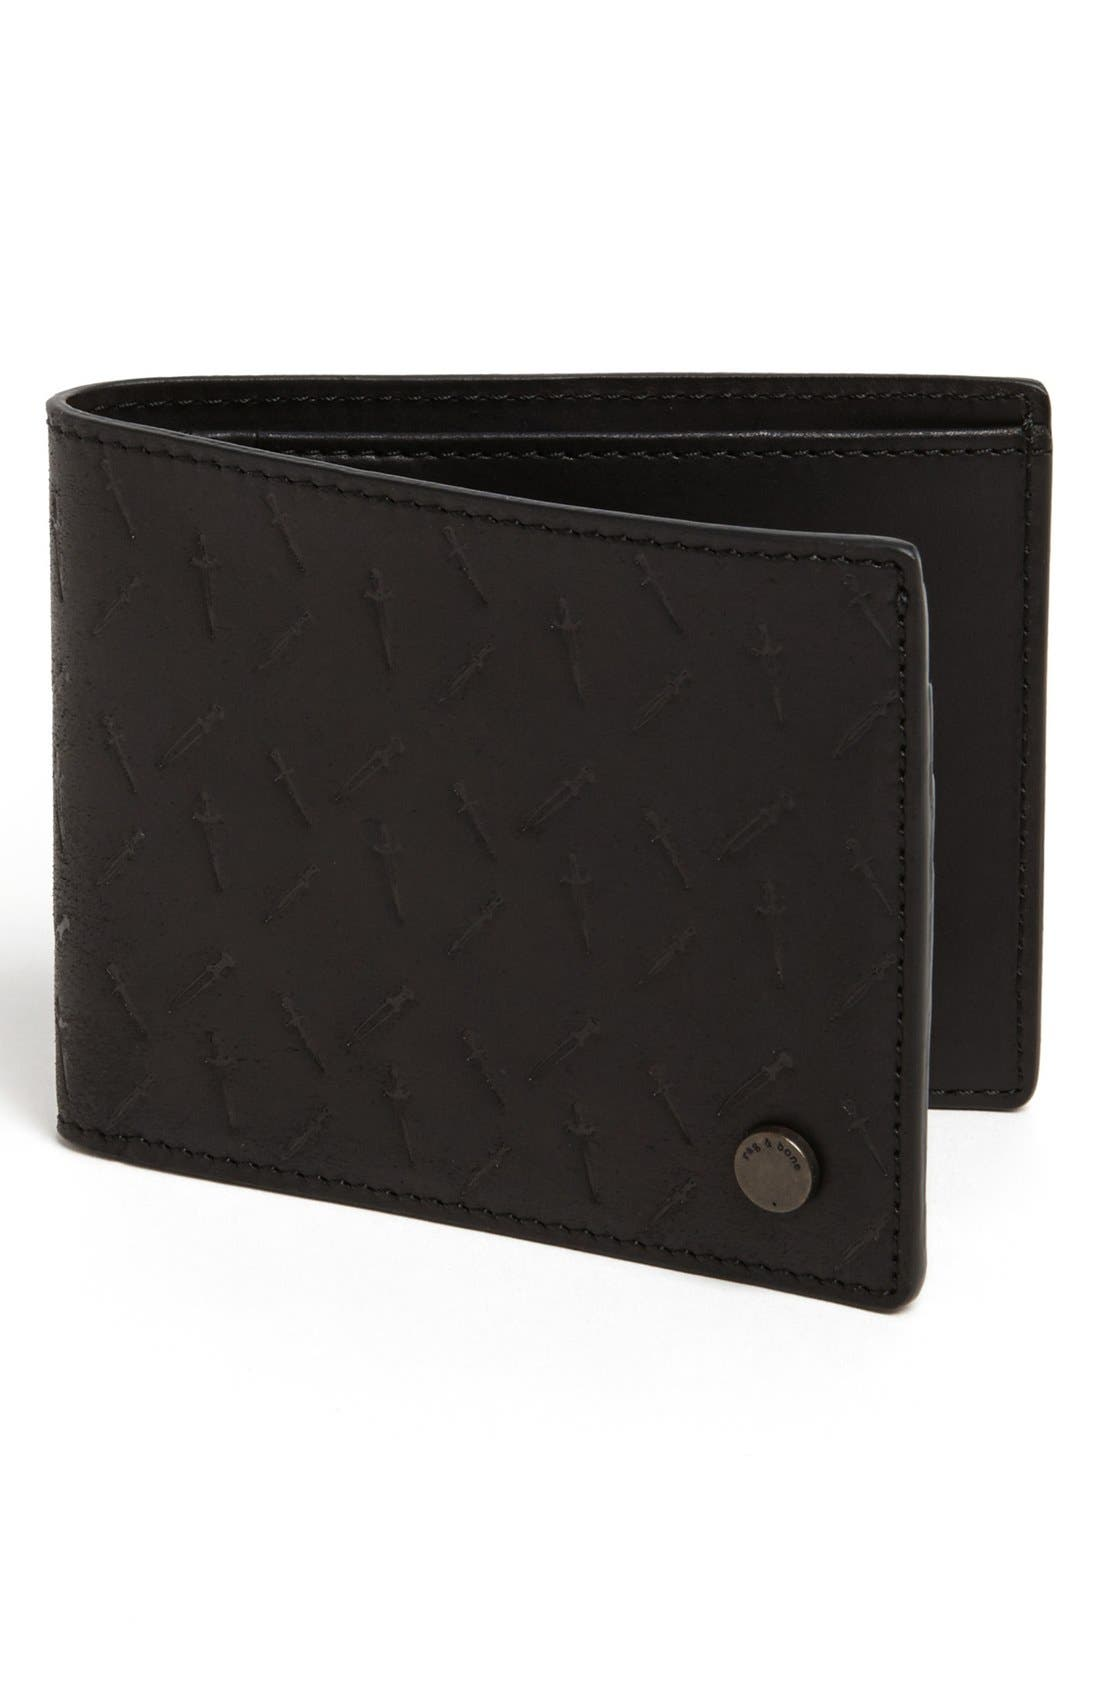 Main Image - rag & bone 'Dagger' Wallet